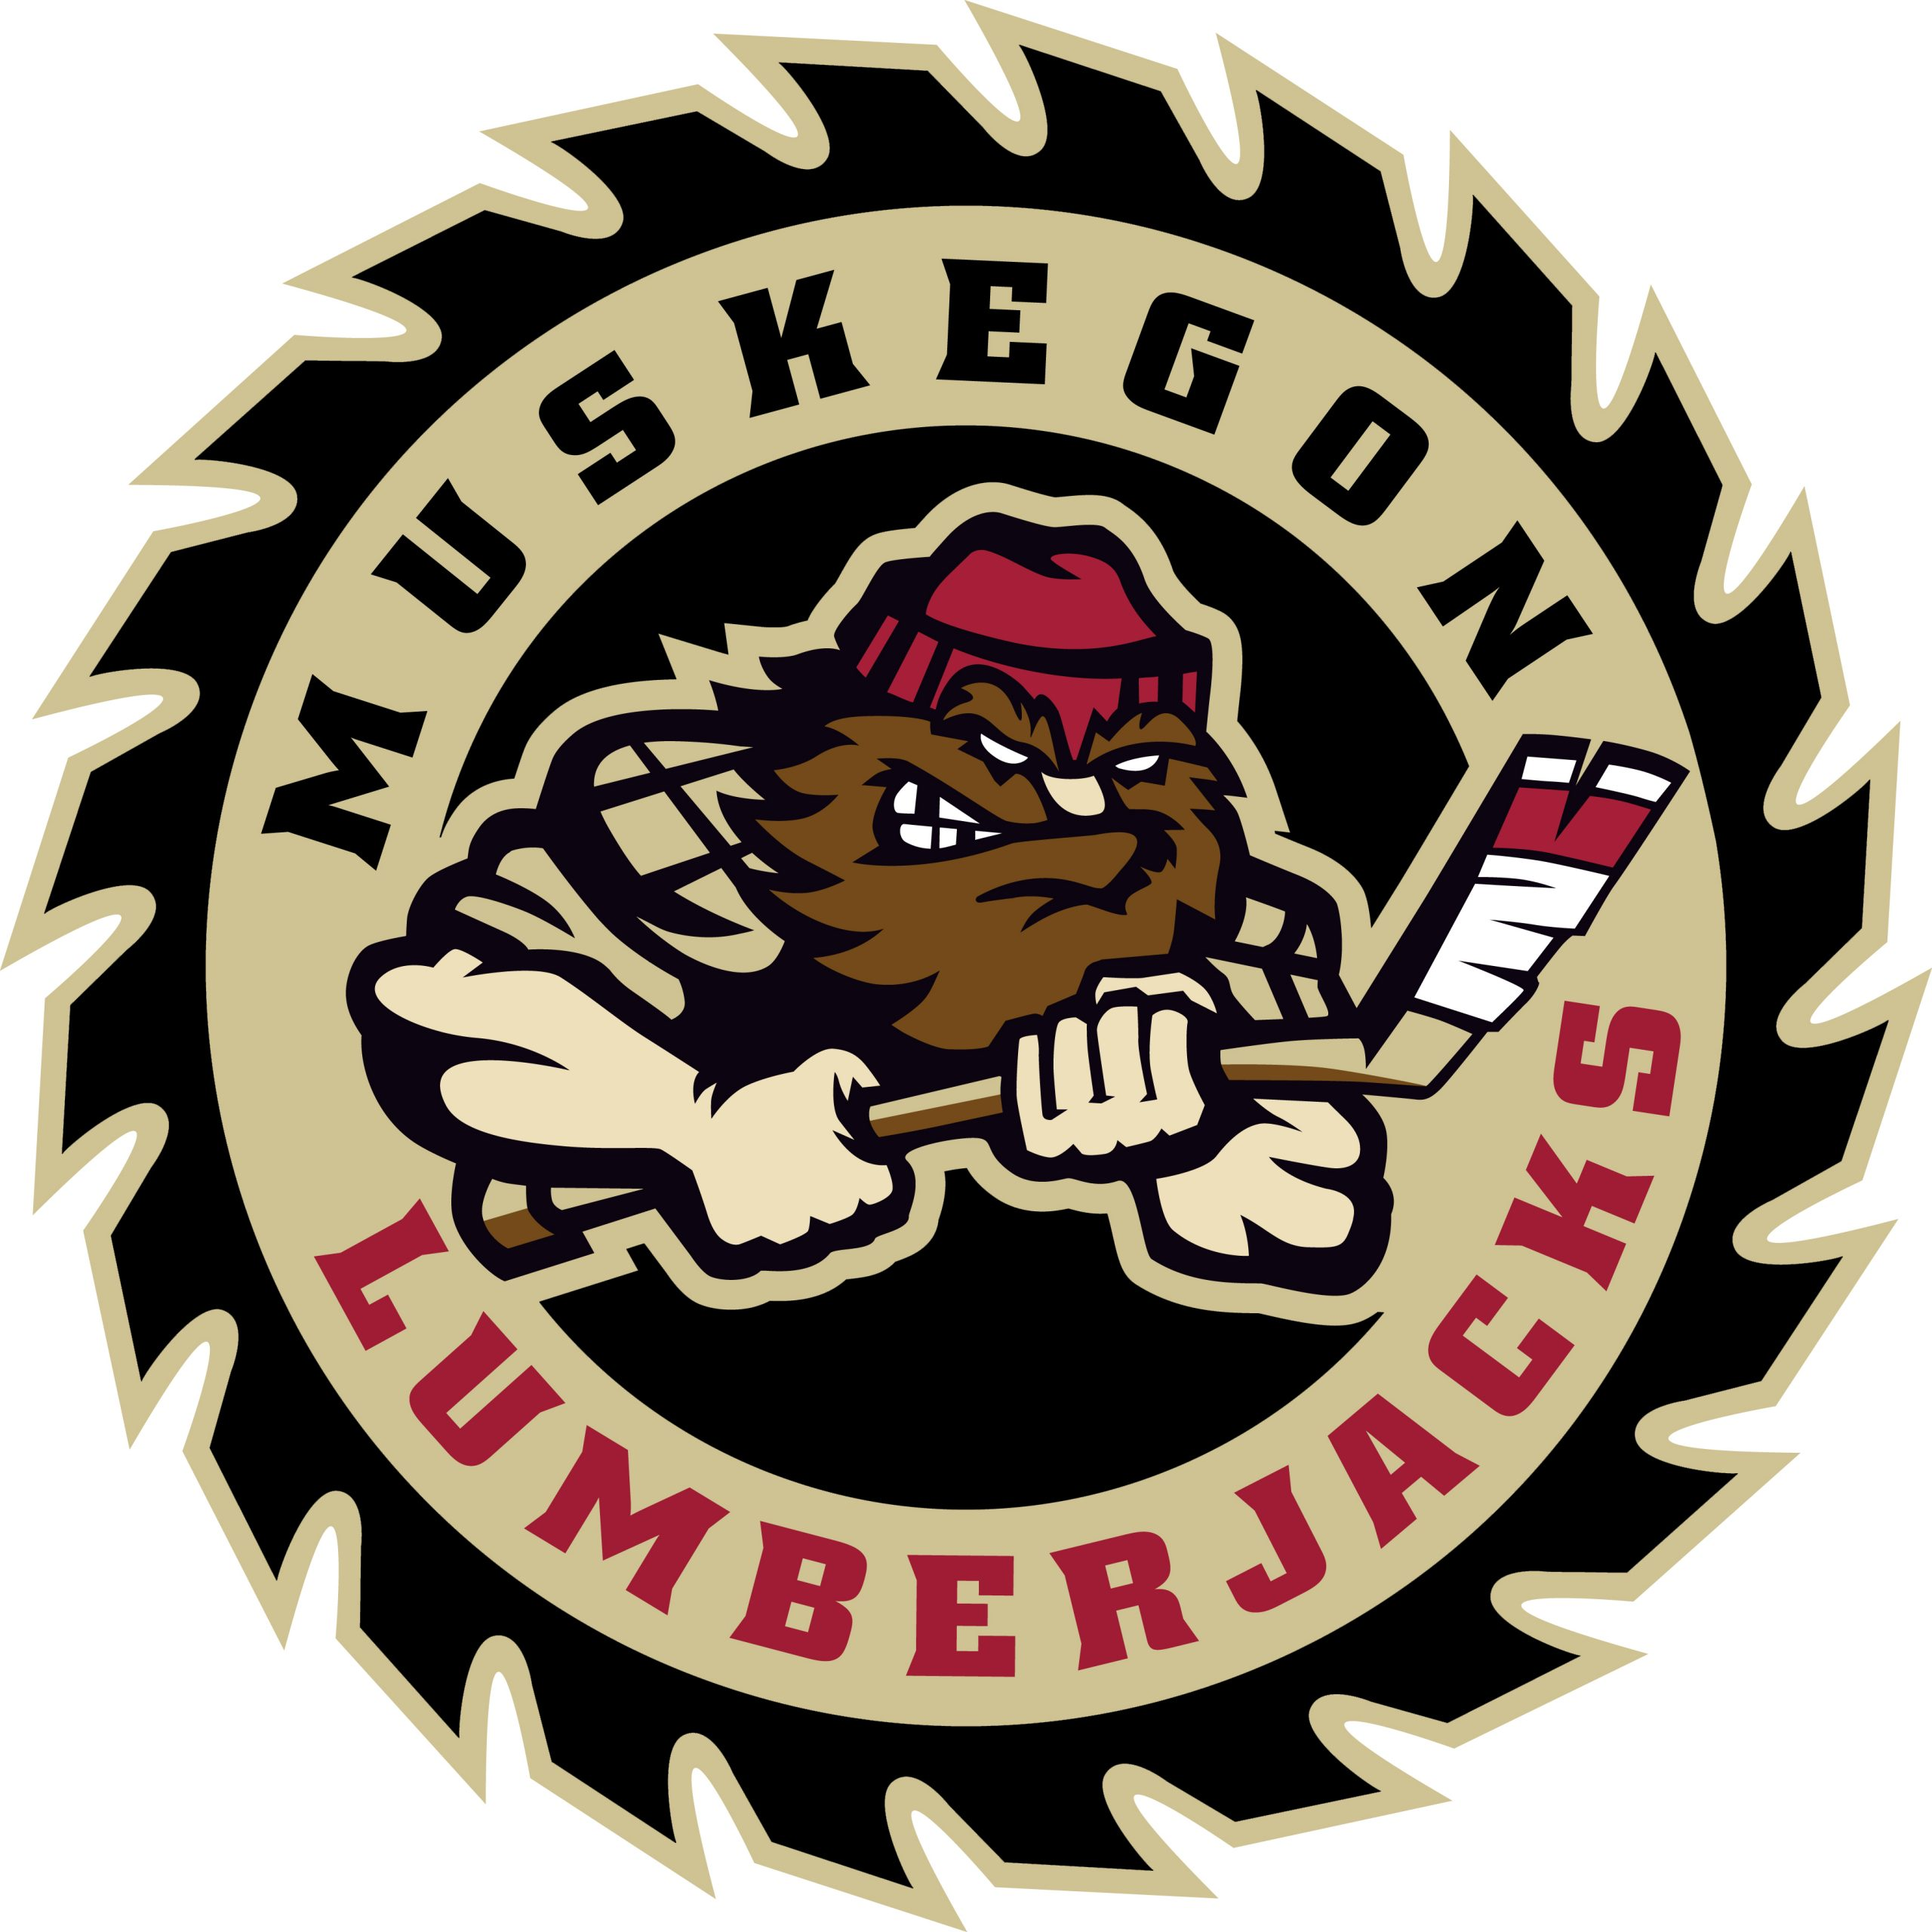 Black and tan saw blade with the heading Muskegon Lumberjacks with a lumberjack man in the center with a red cap on holding a hockey stick